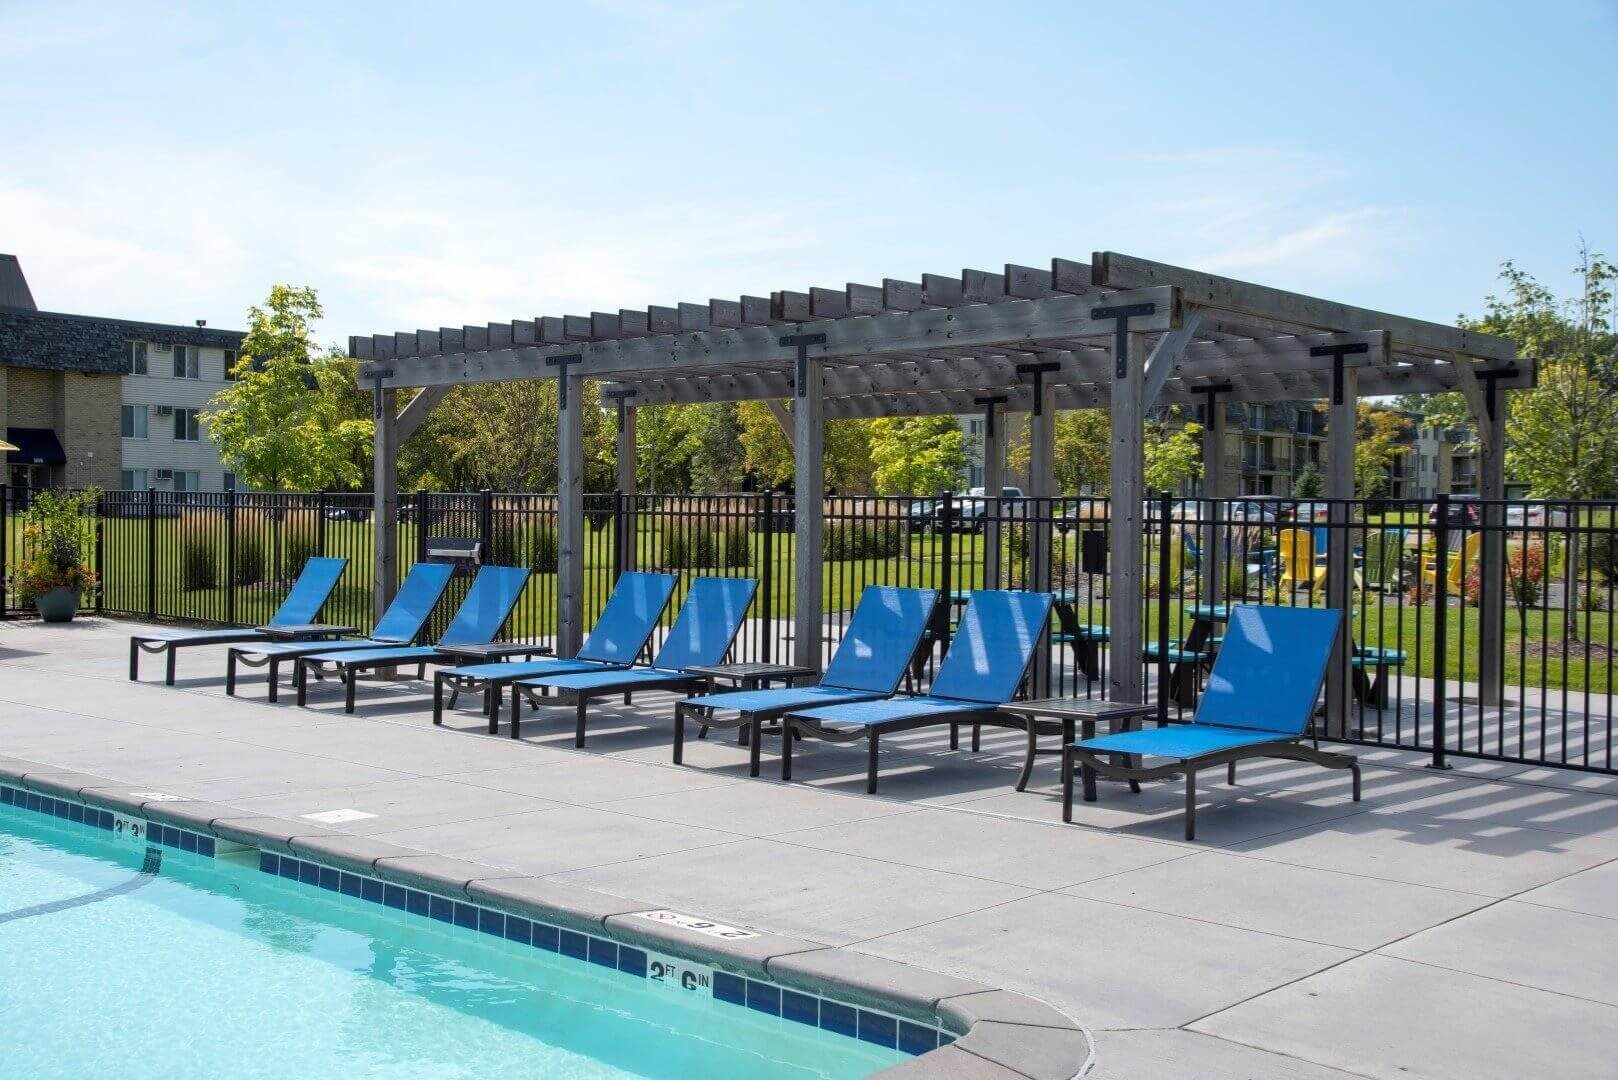 Swimming pool area at Shorview Grand cheap apartments in Shoreview MN